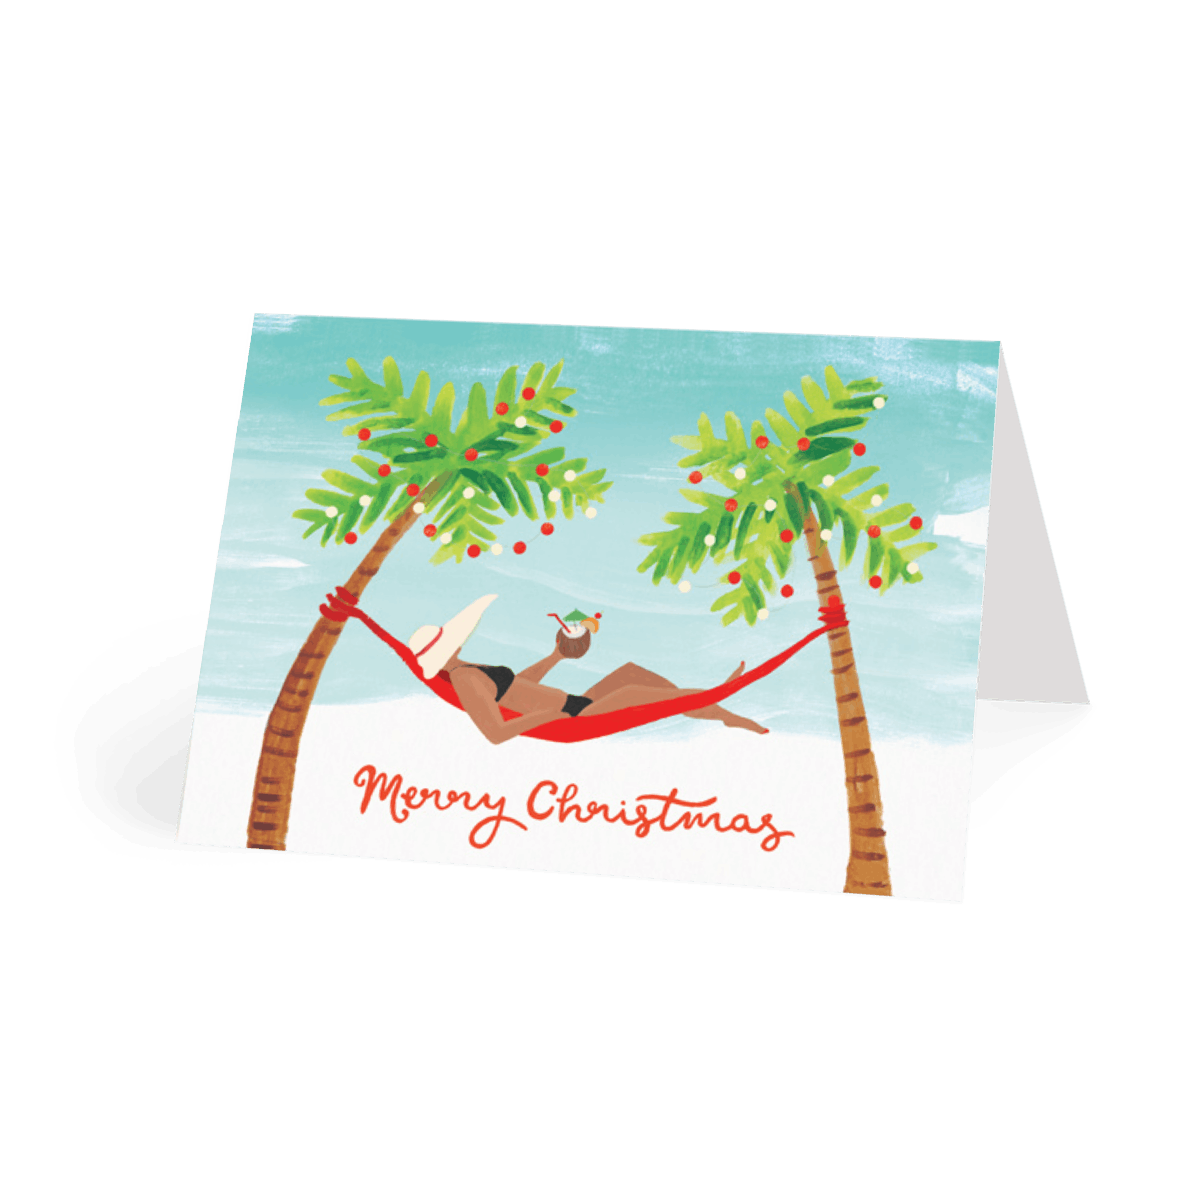 Https%3a%2f%2fwww.papier.com%2fproduct image%2f93395%2f14%2fchristmas beach 23357 front 1571841413.png?ixlib=rb 1.1